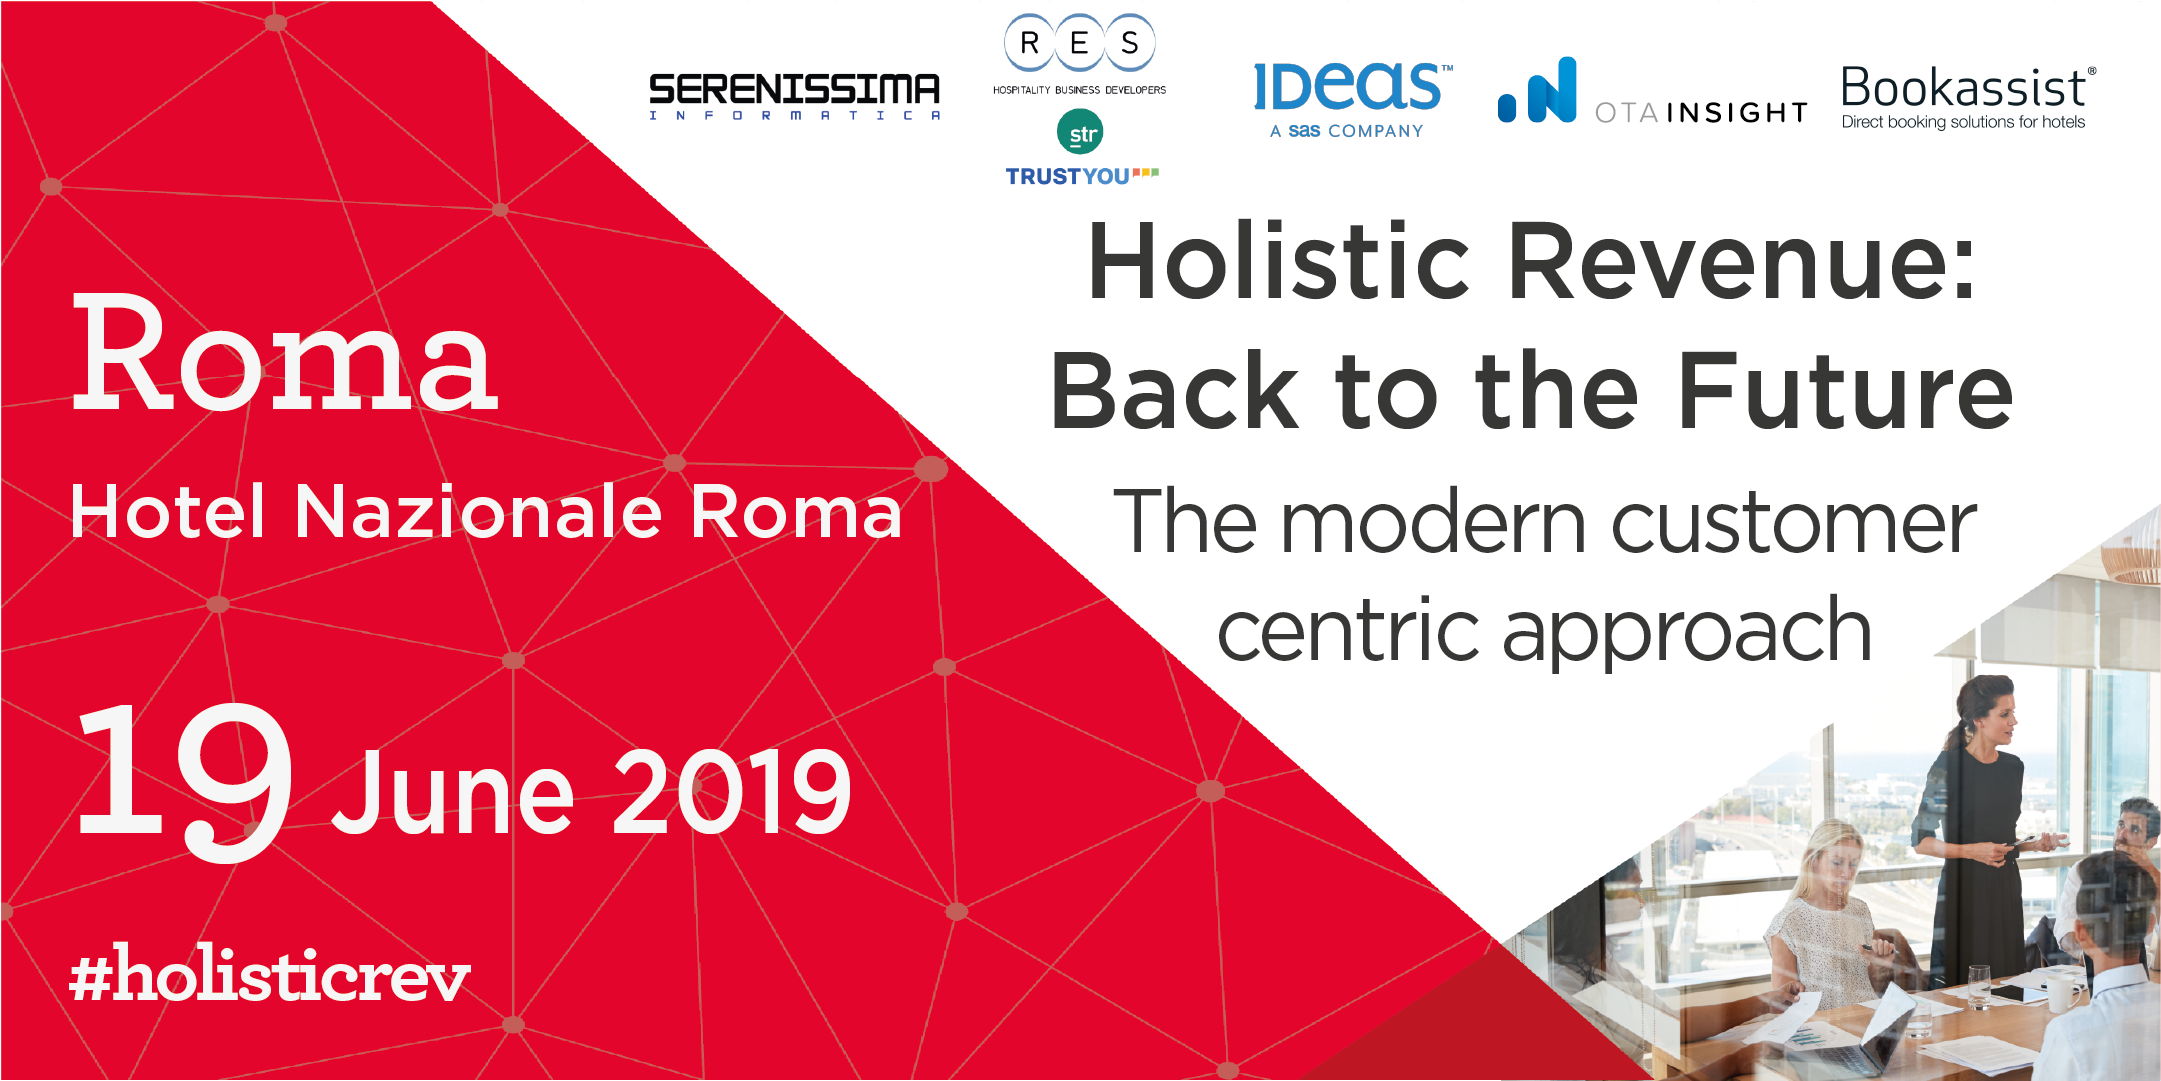 Roadshow 2019 > Holistic Revenue: Back to the Future! (RM)